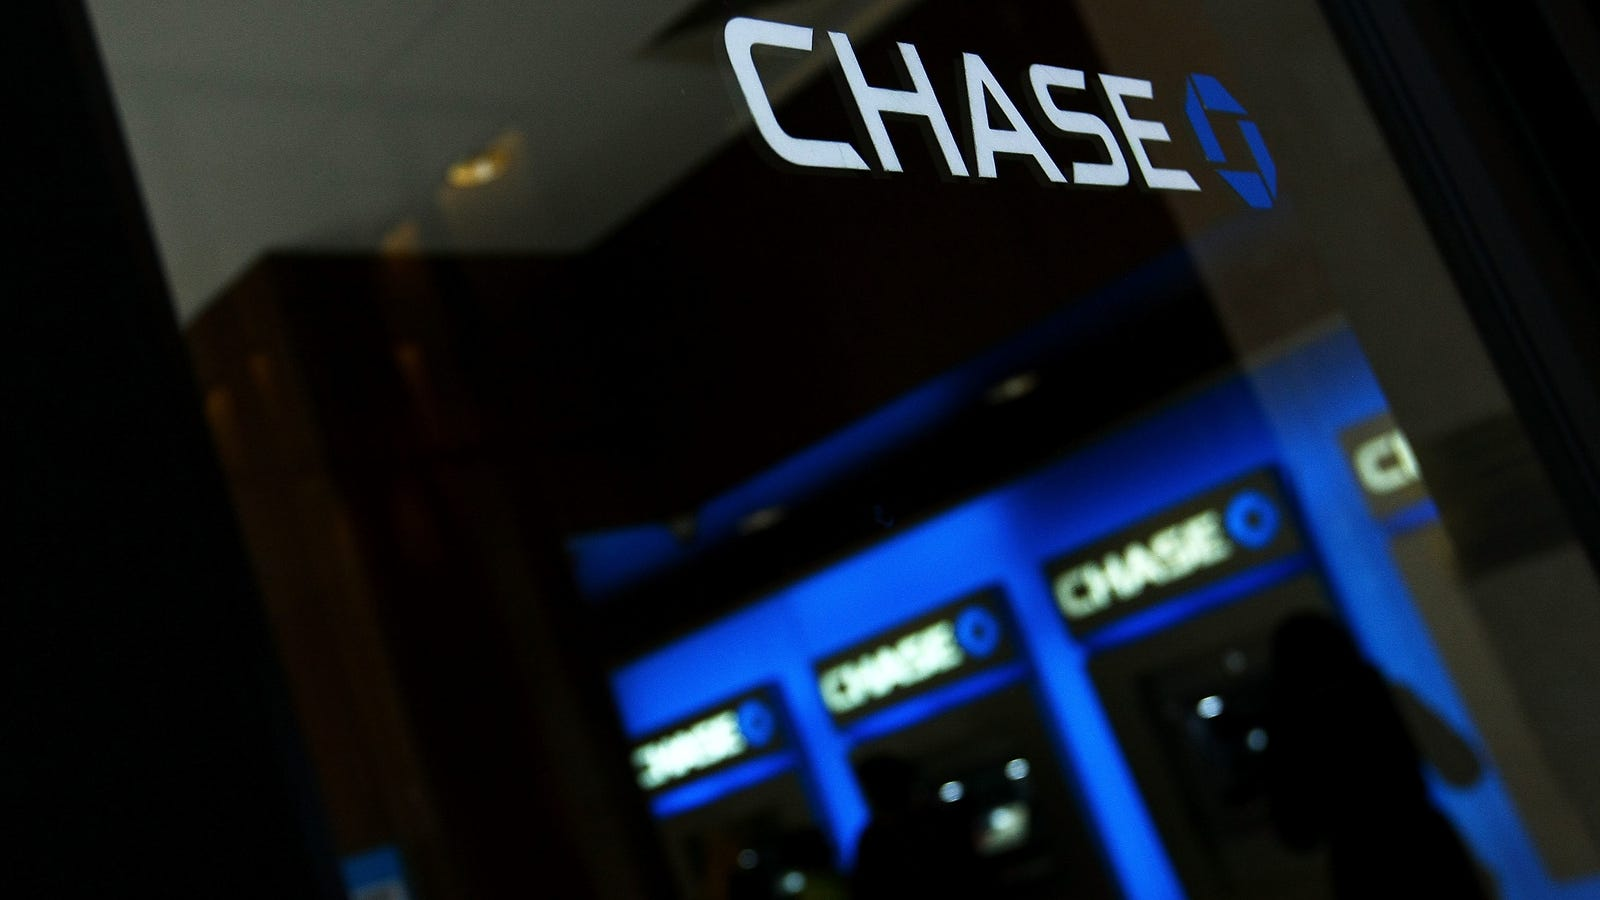 Temporarily lock and unlock your Chase credit cards from your phone forecast